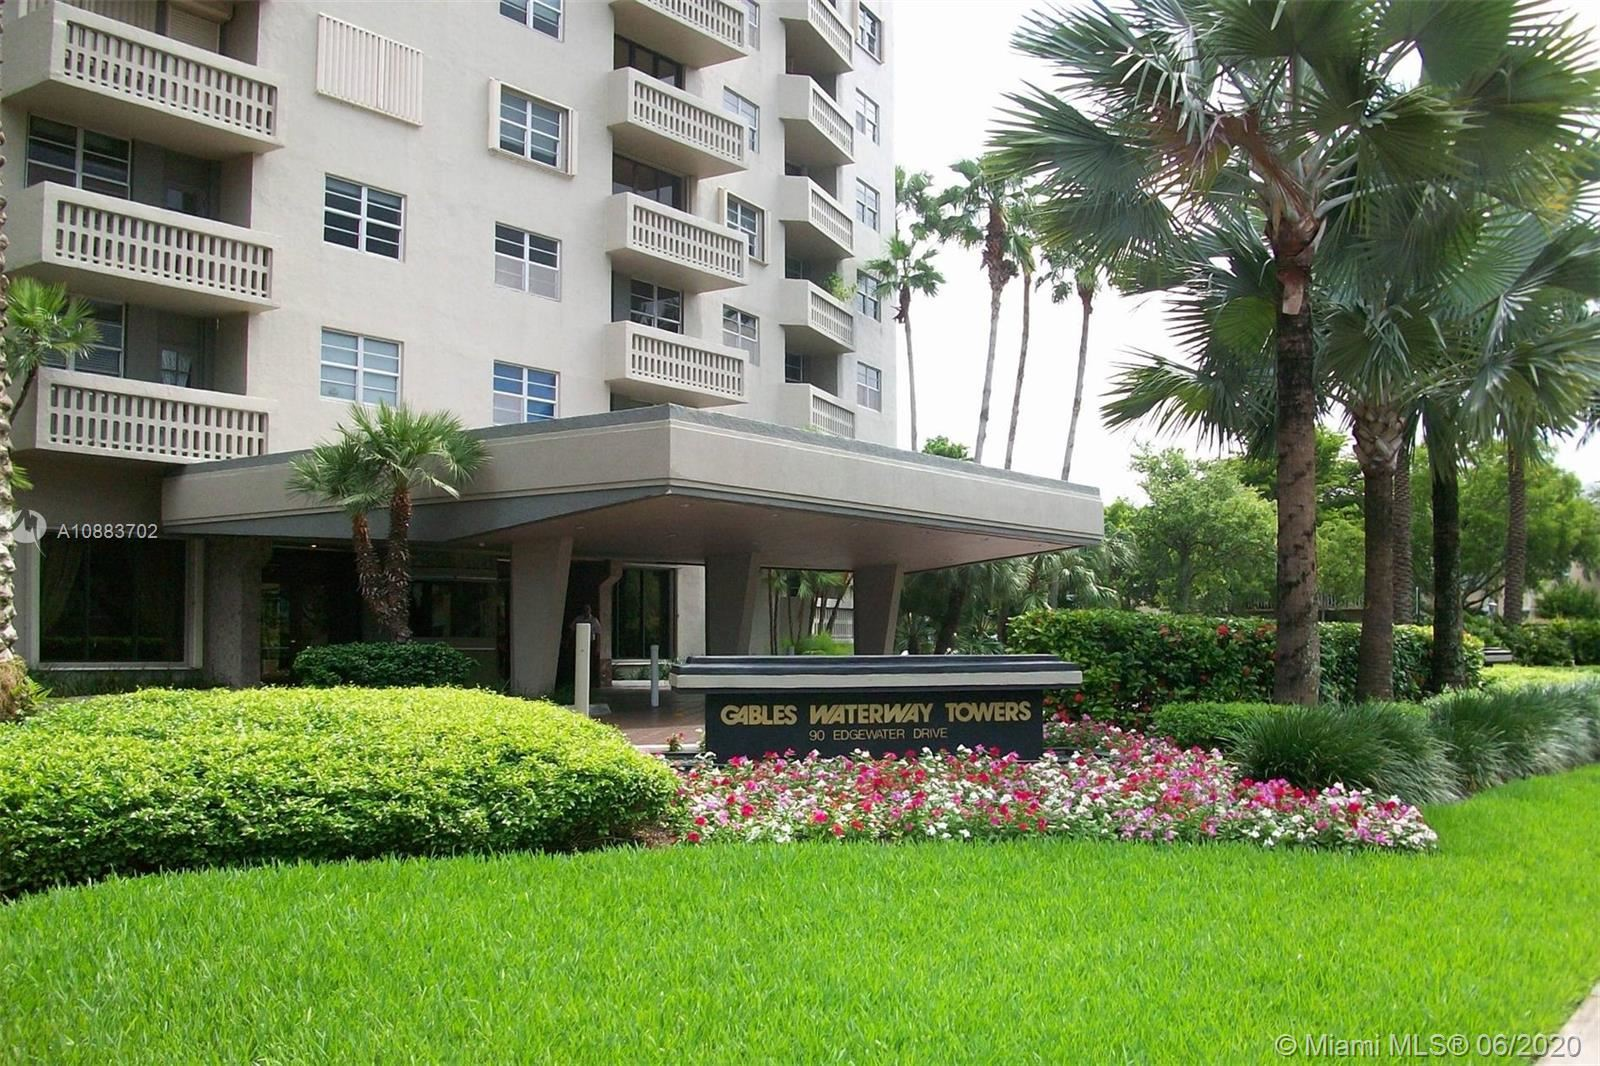 90 Edgewater Dr #402, Coral Gables, FL 33133 - #: A10883702